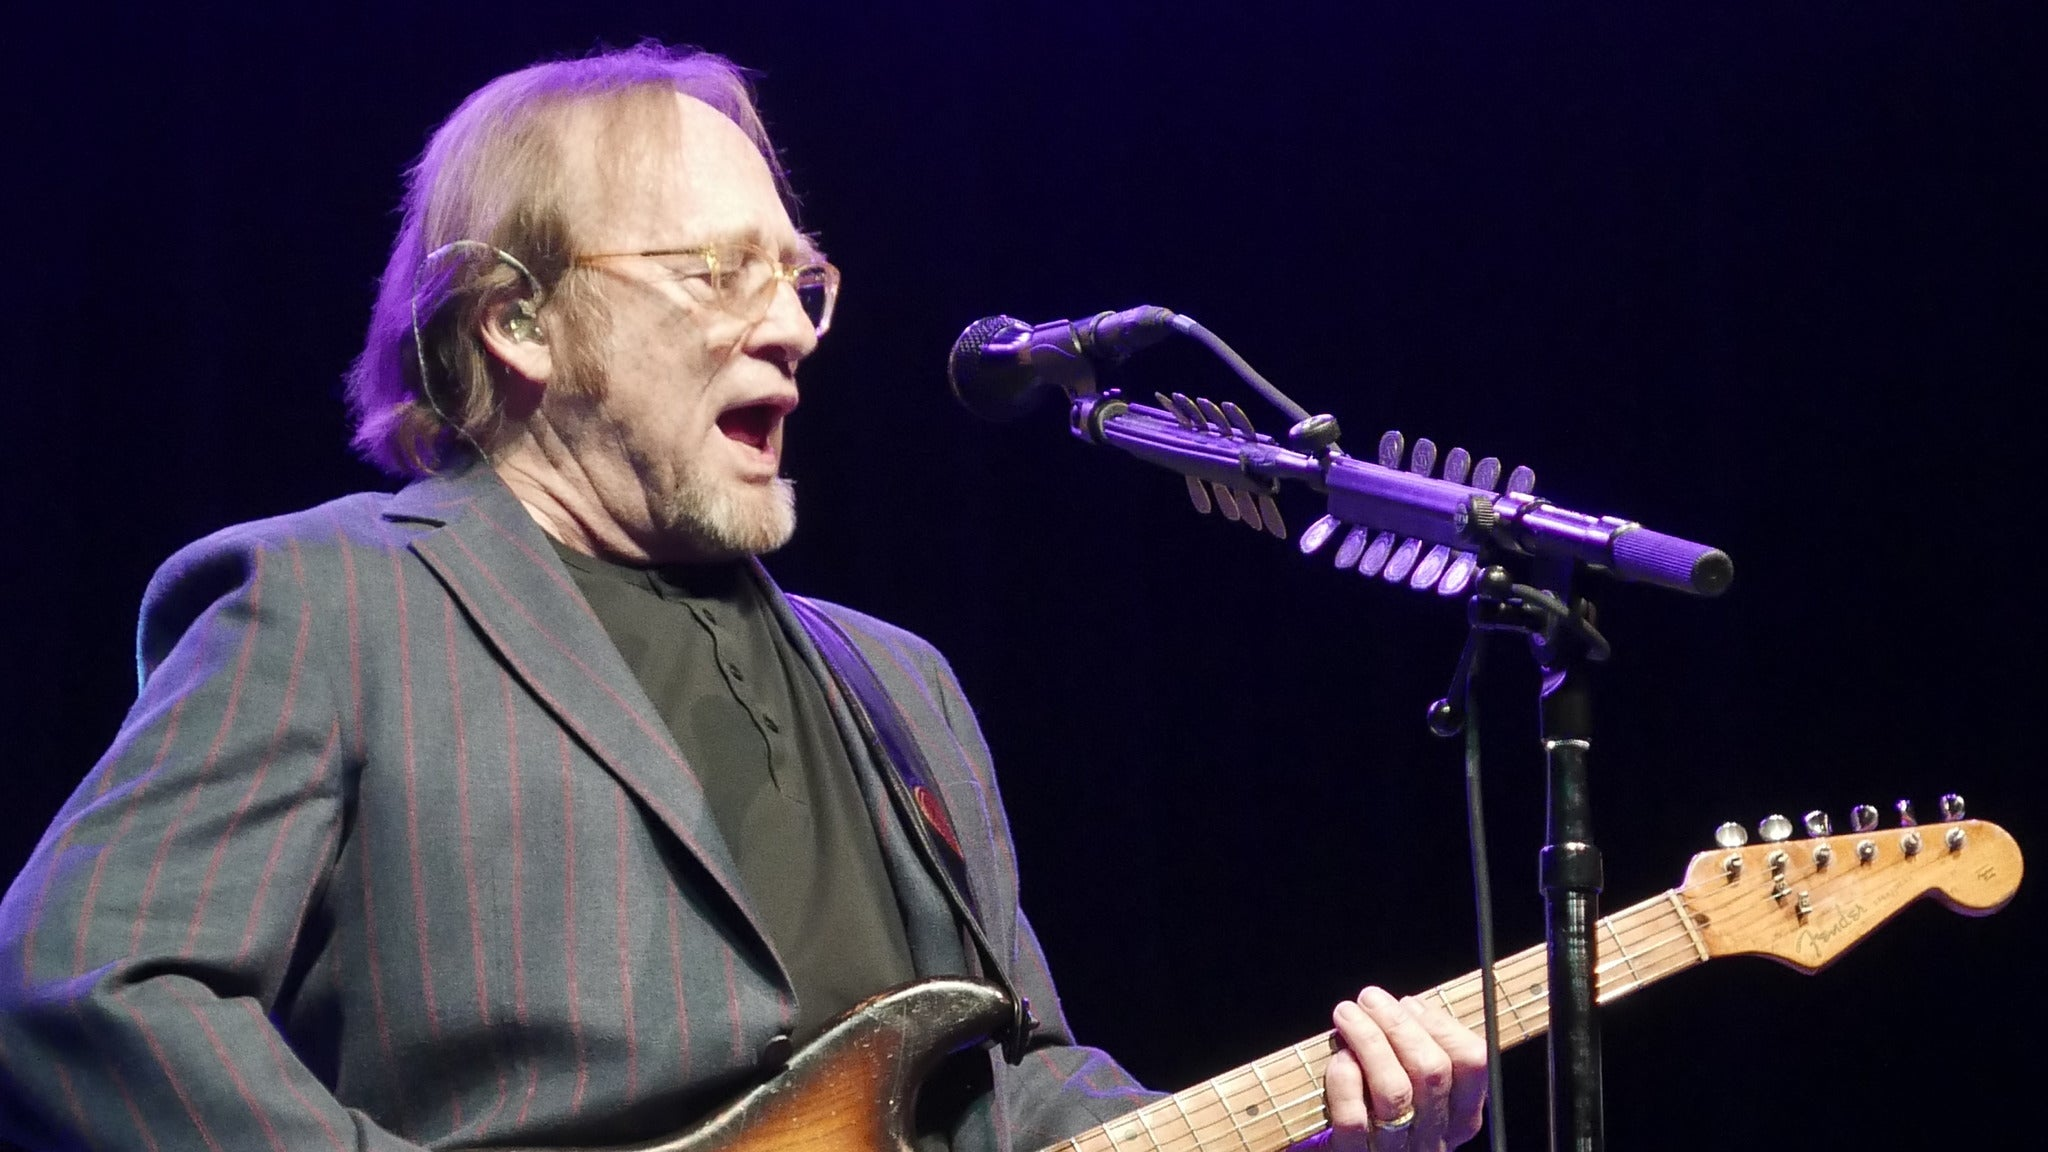 Stephen Stills and Judy Collins with special guest Joe Purdy